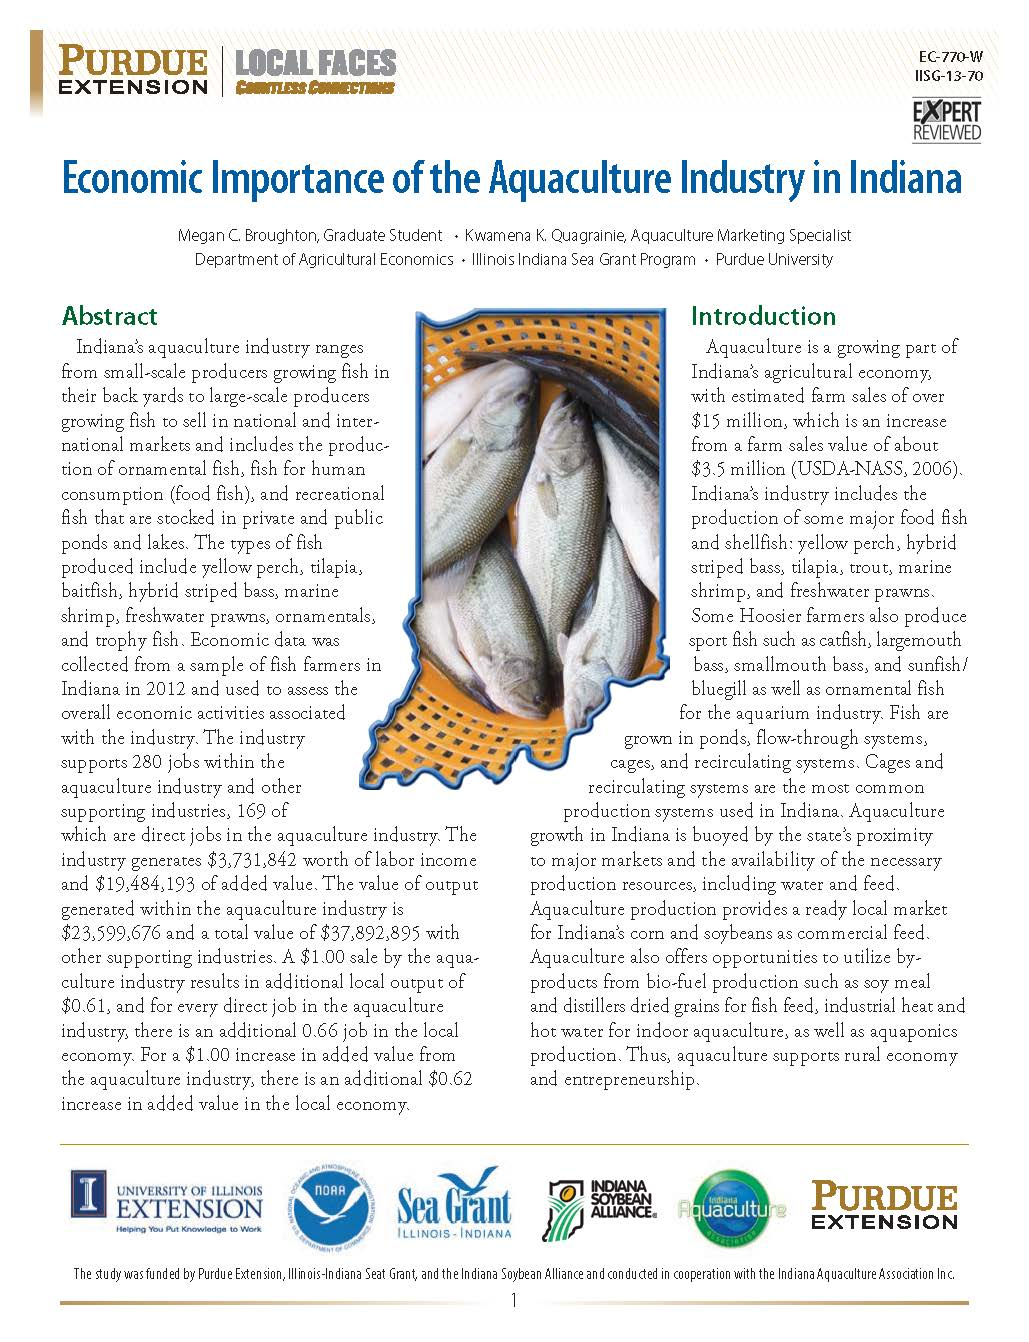 Economic Importance of the Aquaculture Industry in Indiana Thumbnail